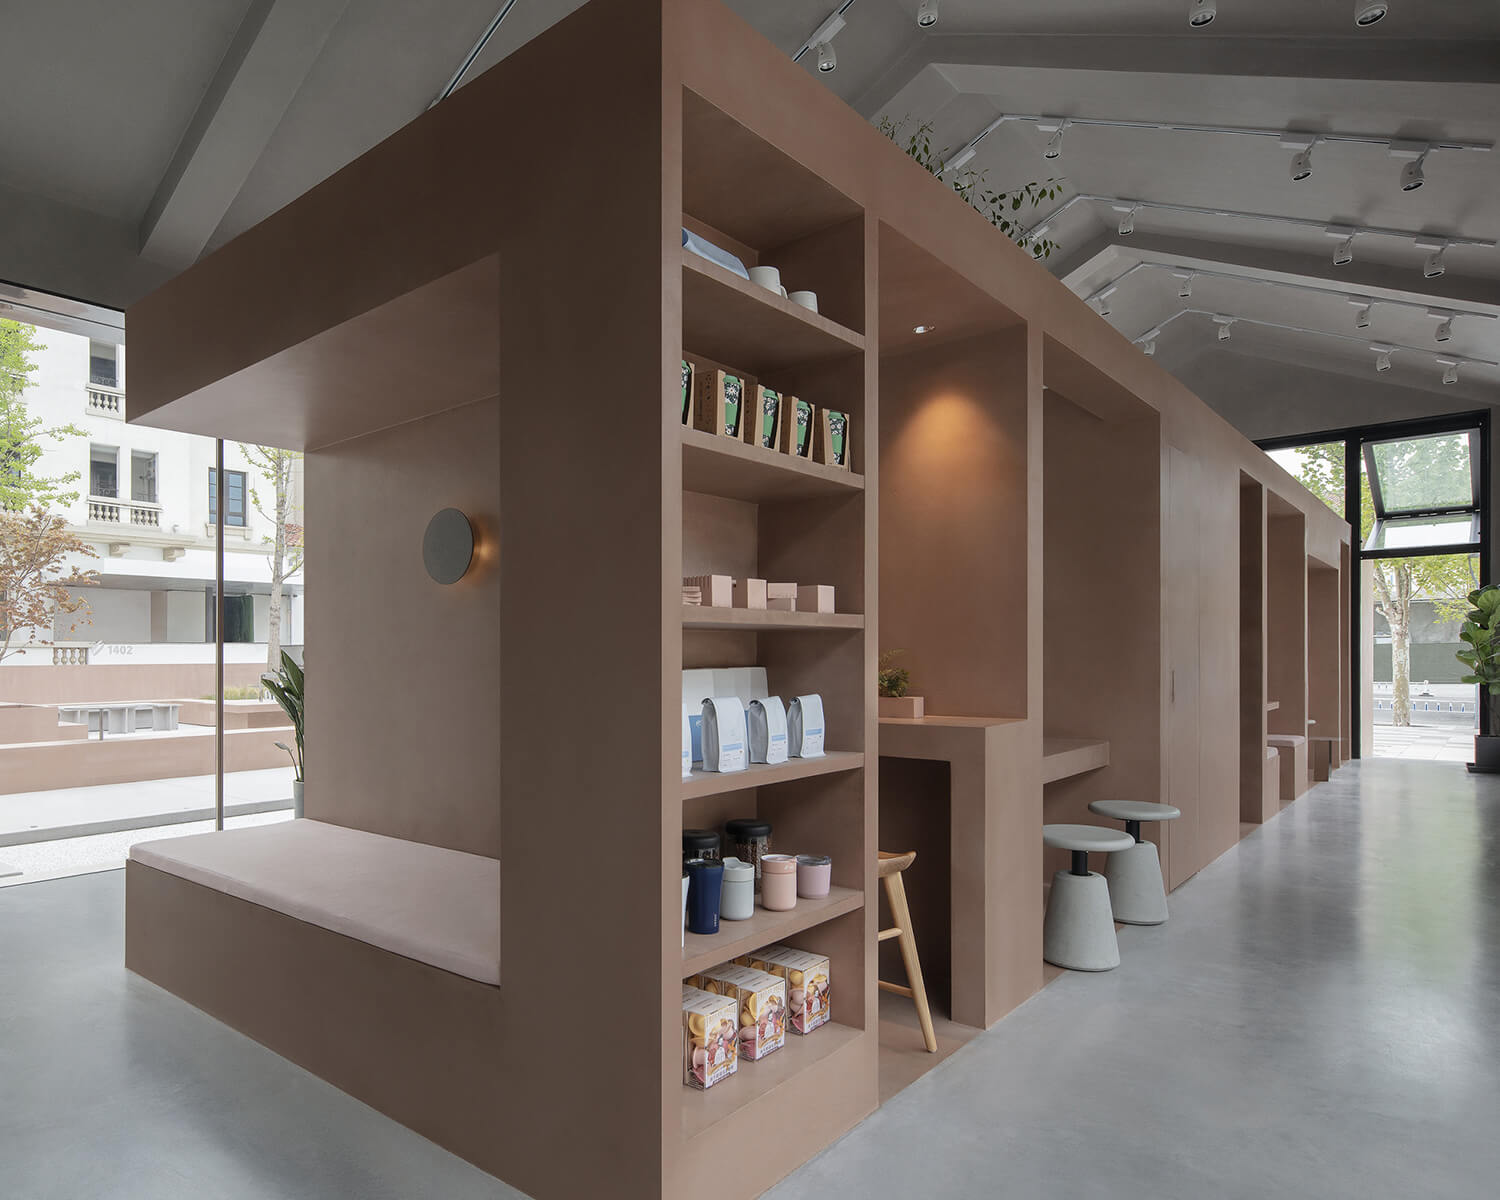 Interior view showing the new cement volume containing open shelving and seating space